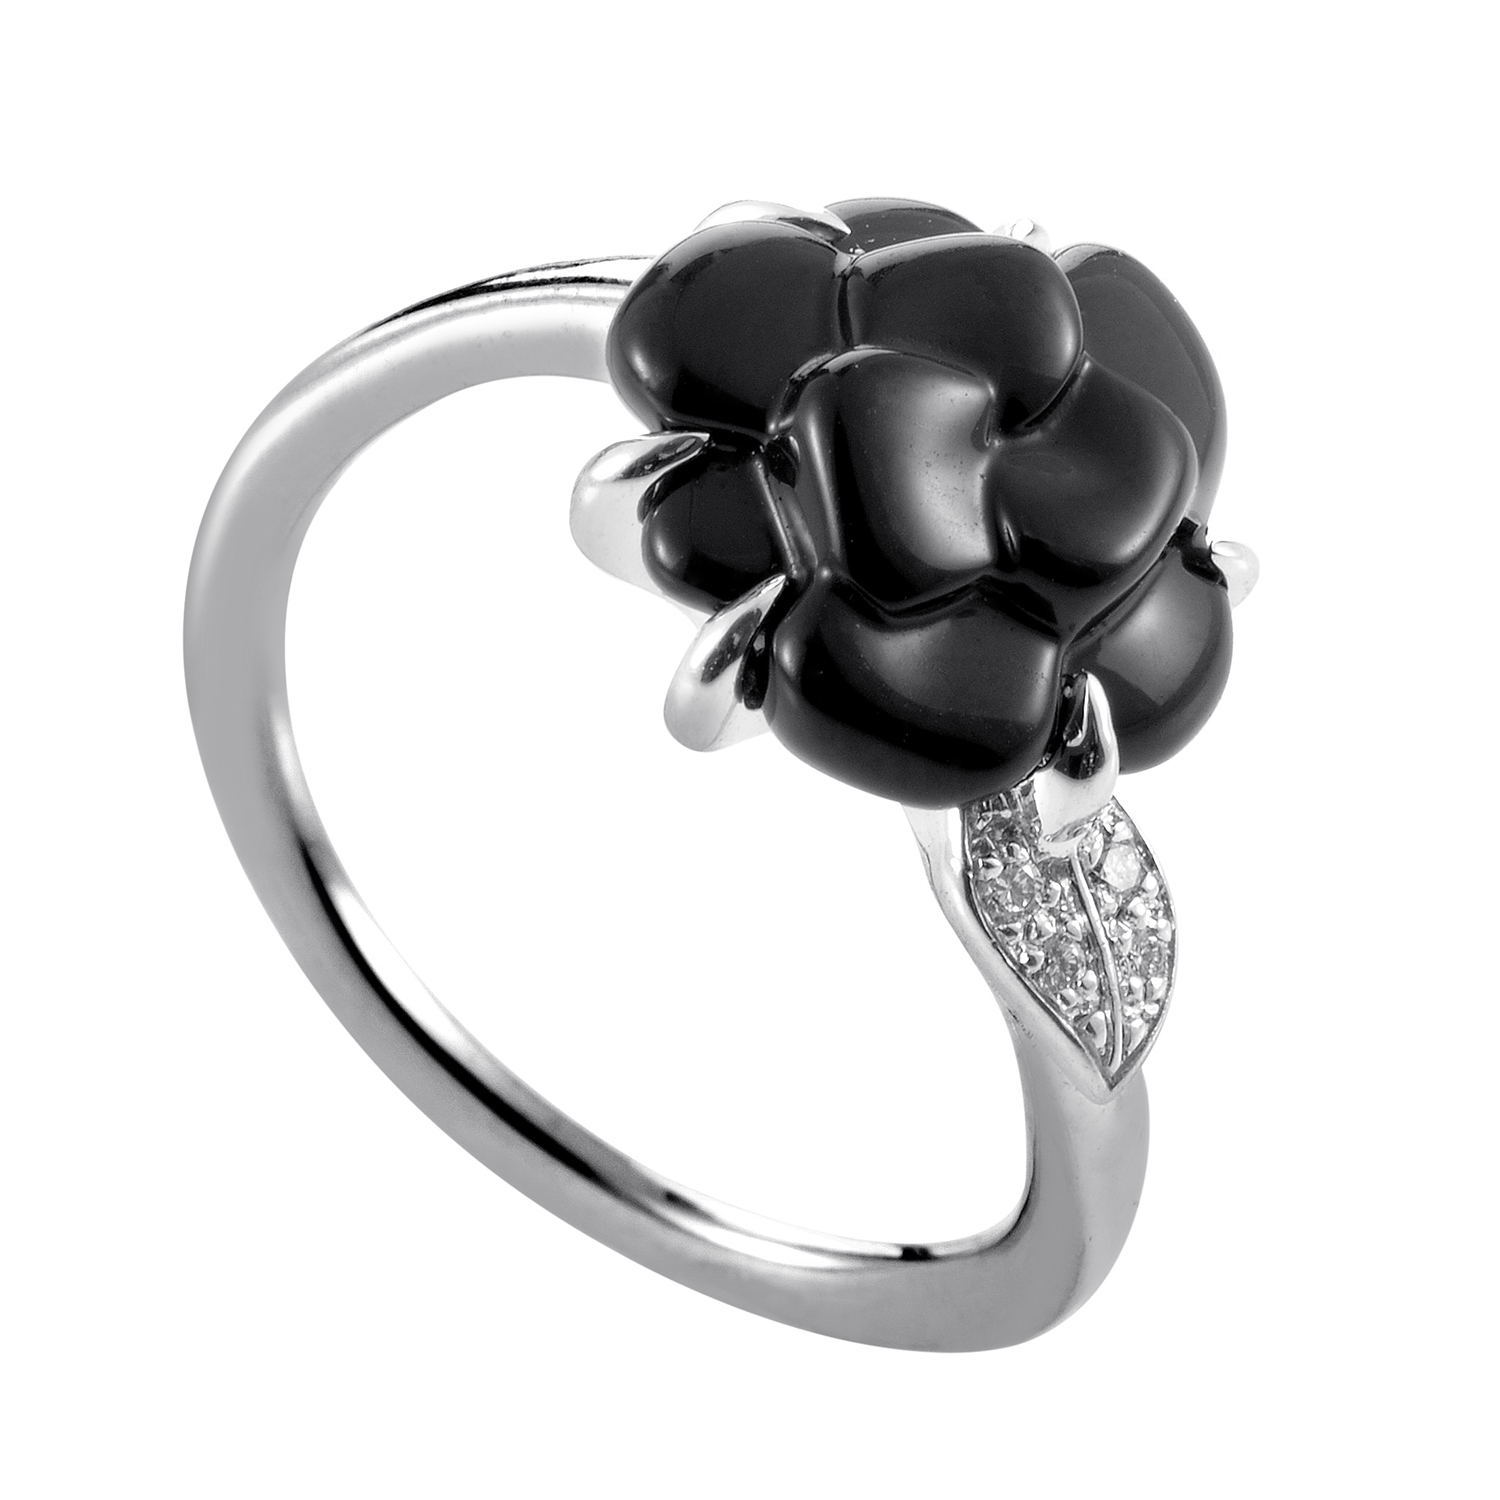 Chanel Camélia 18K White Gold Diamond & Onyx Ring